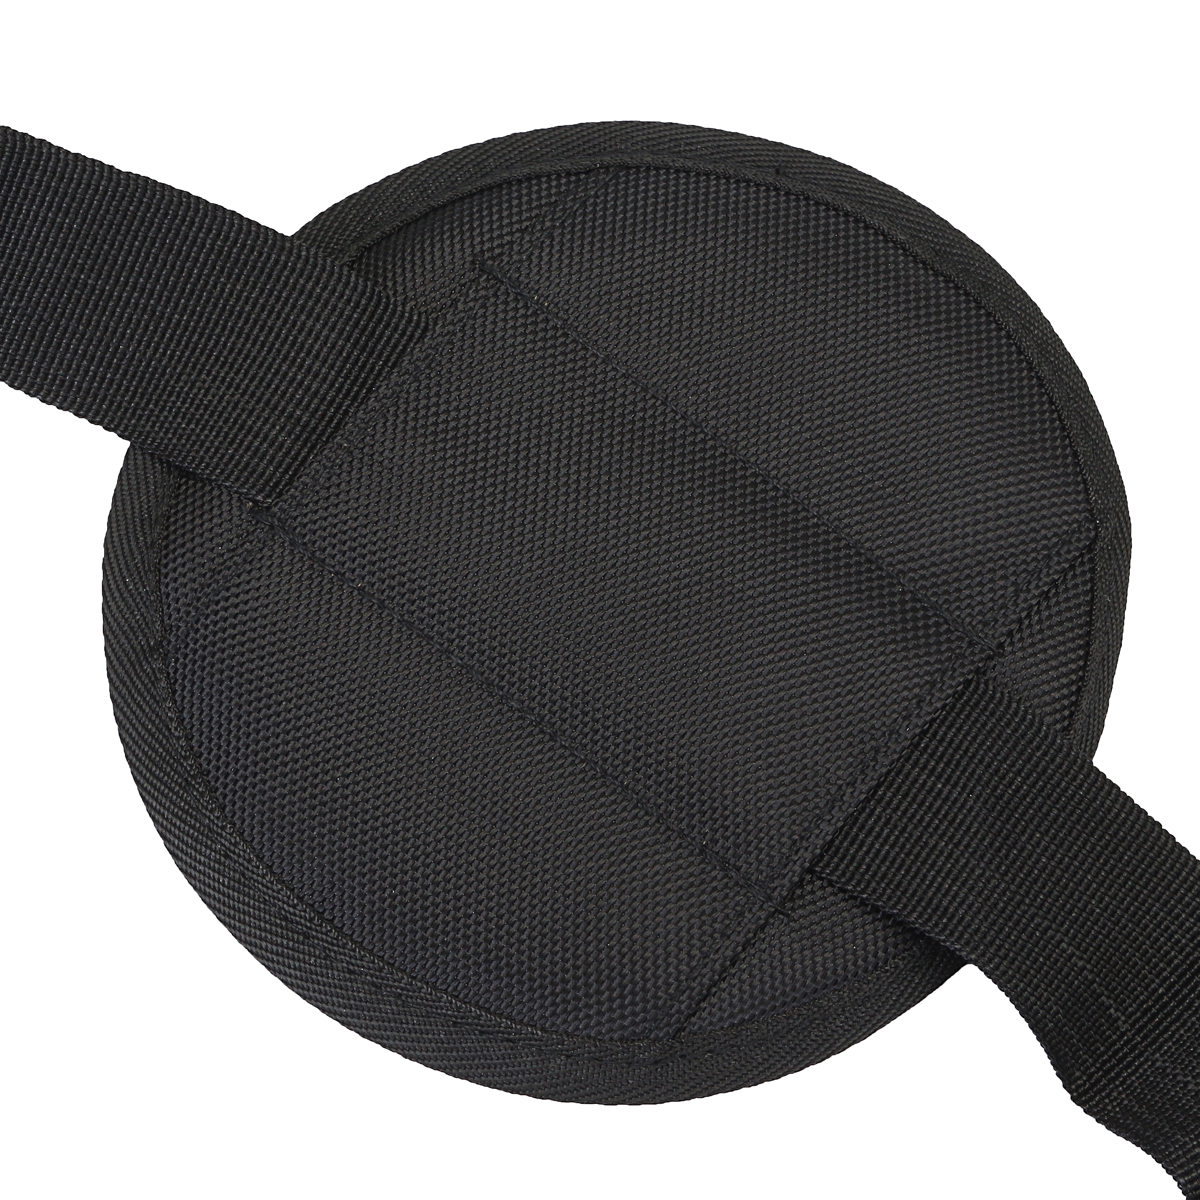 Physical Therapy Lumbar Orthosis Waist Back Brace Orthotic Support Adjustable